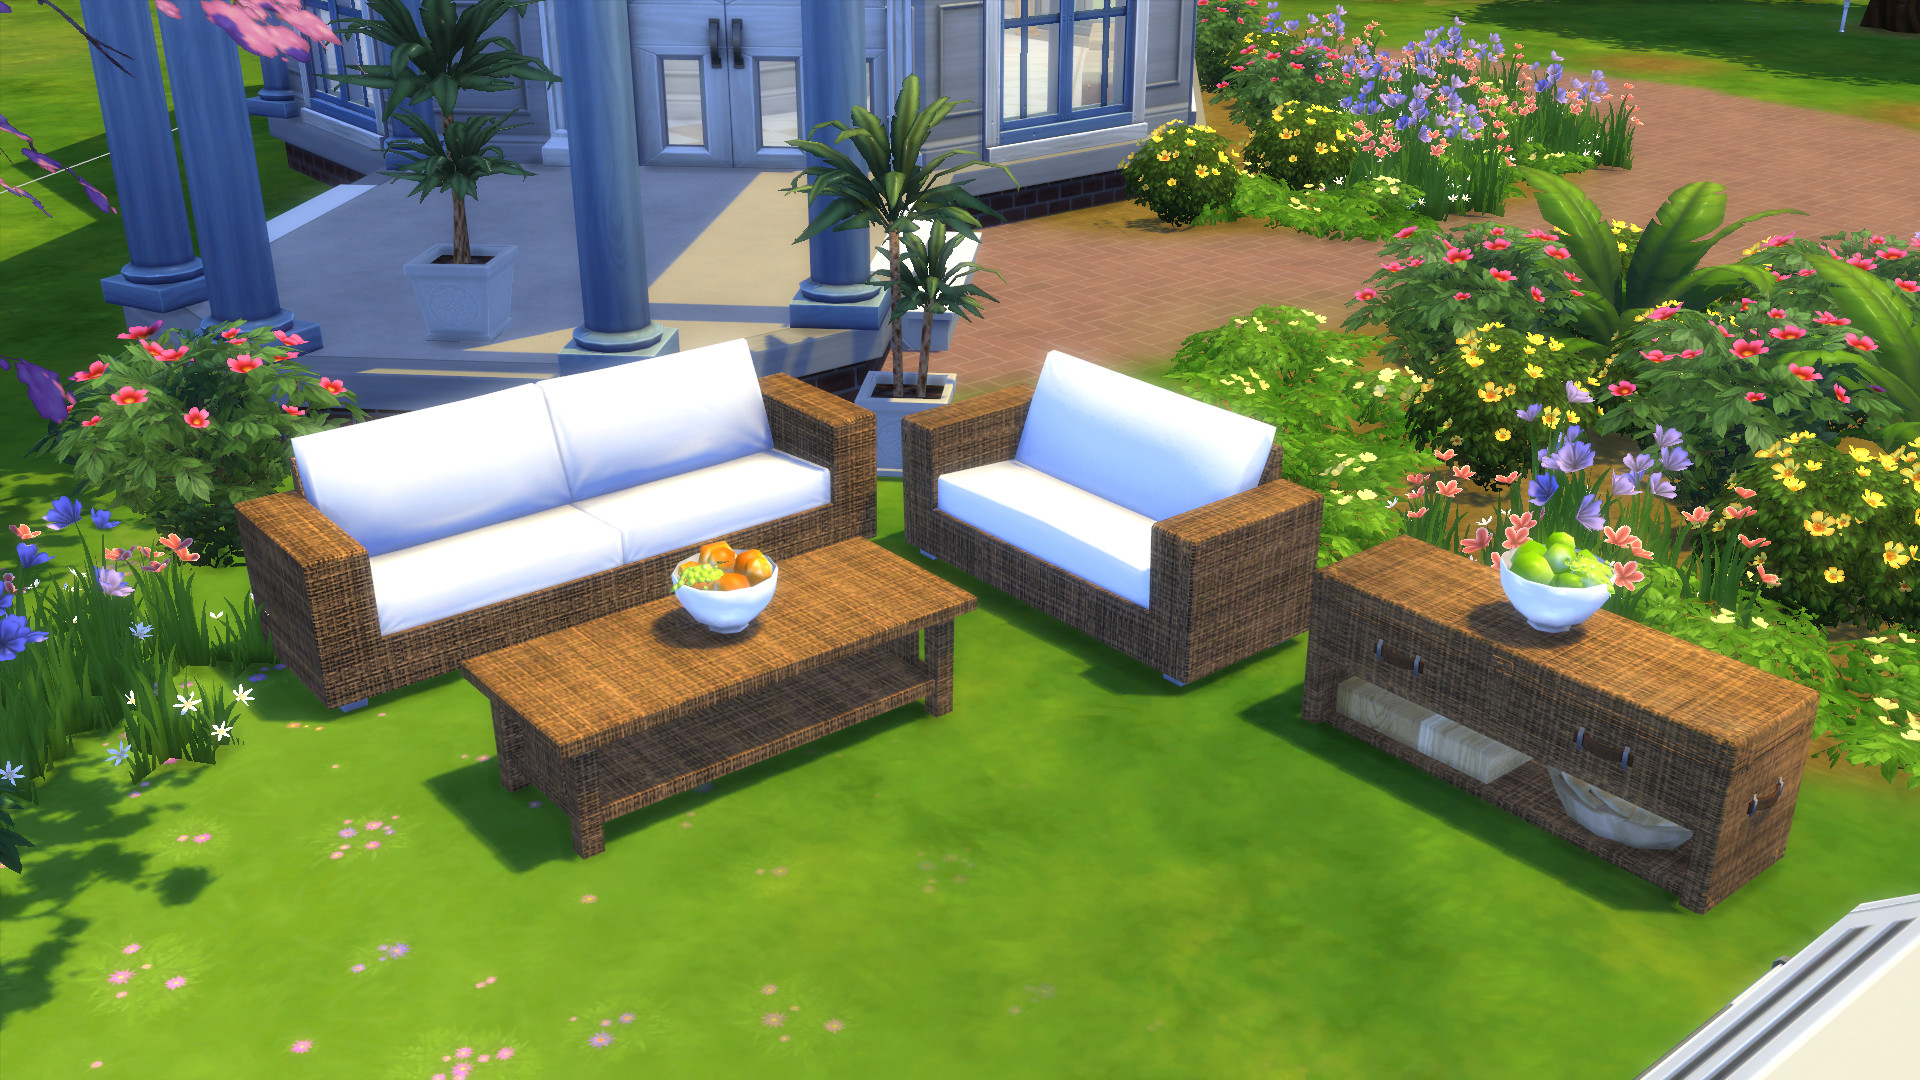 The sims wiki,sims,gardening (the sims 4),the sims 4,the sims 4: outdoor retreat,the sims 4: get to work,the sims 4